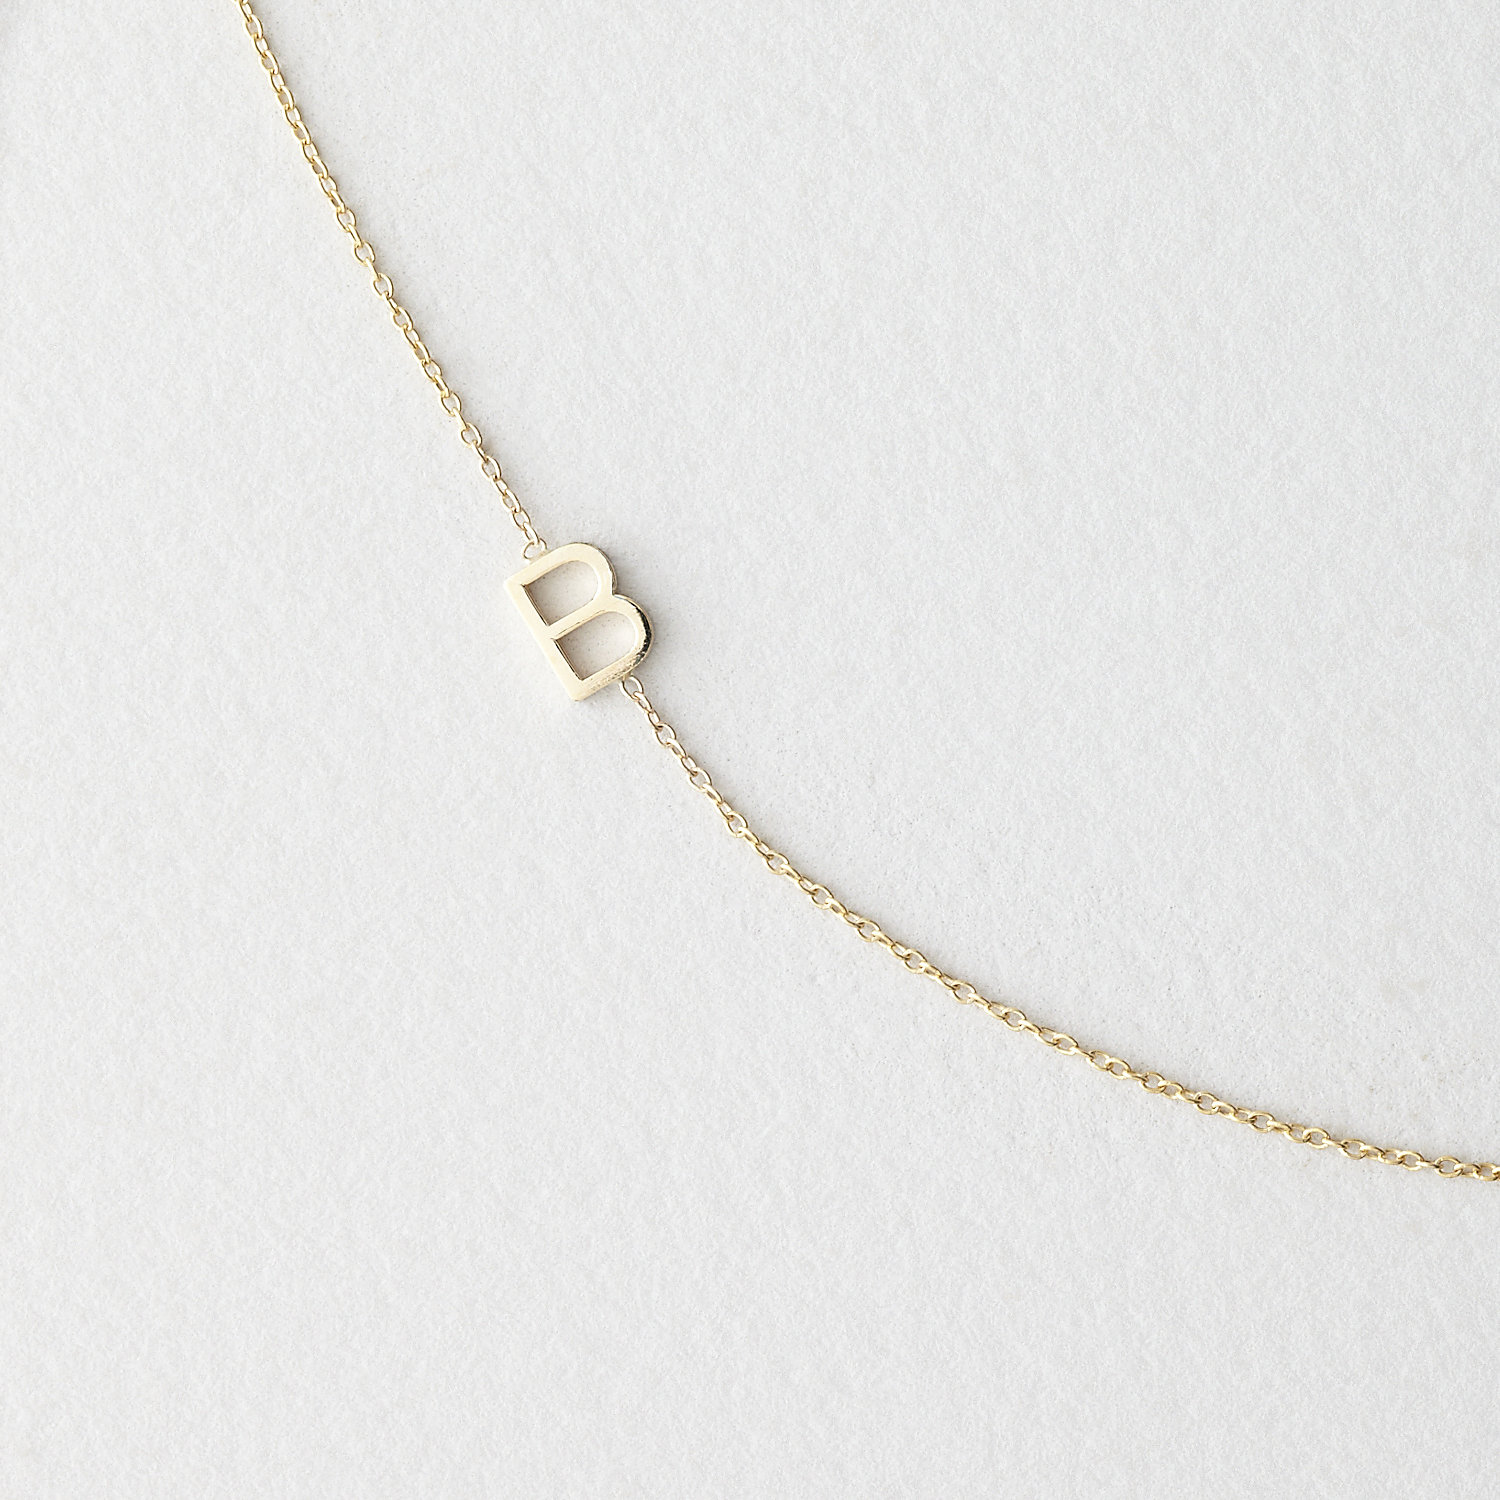 Asymmetrical Mini Letter Necklace - B